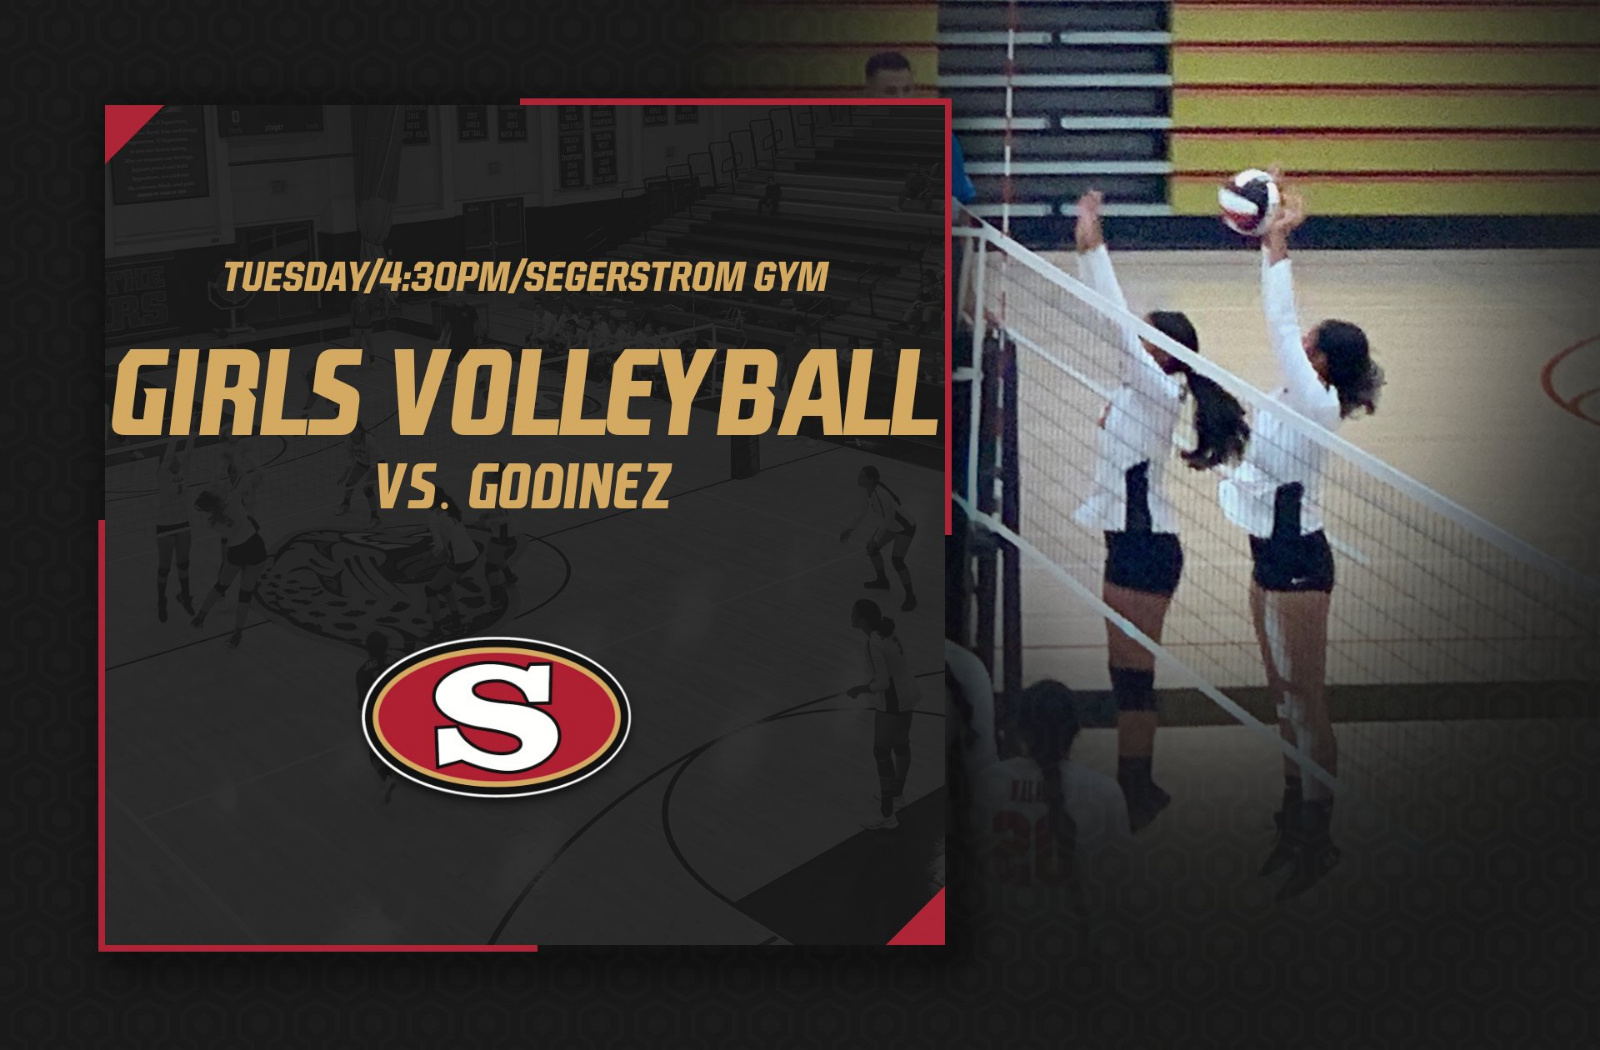 Girls Volleyball vs. Godinez – Tuesday